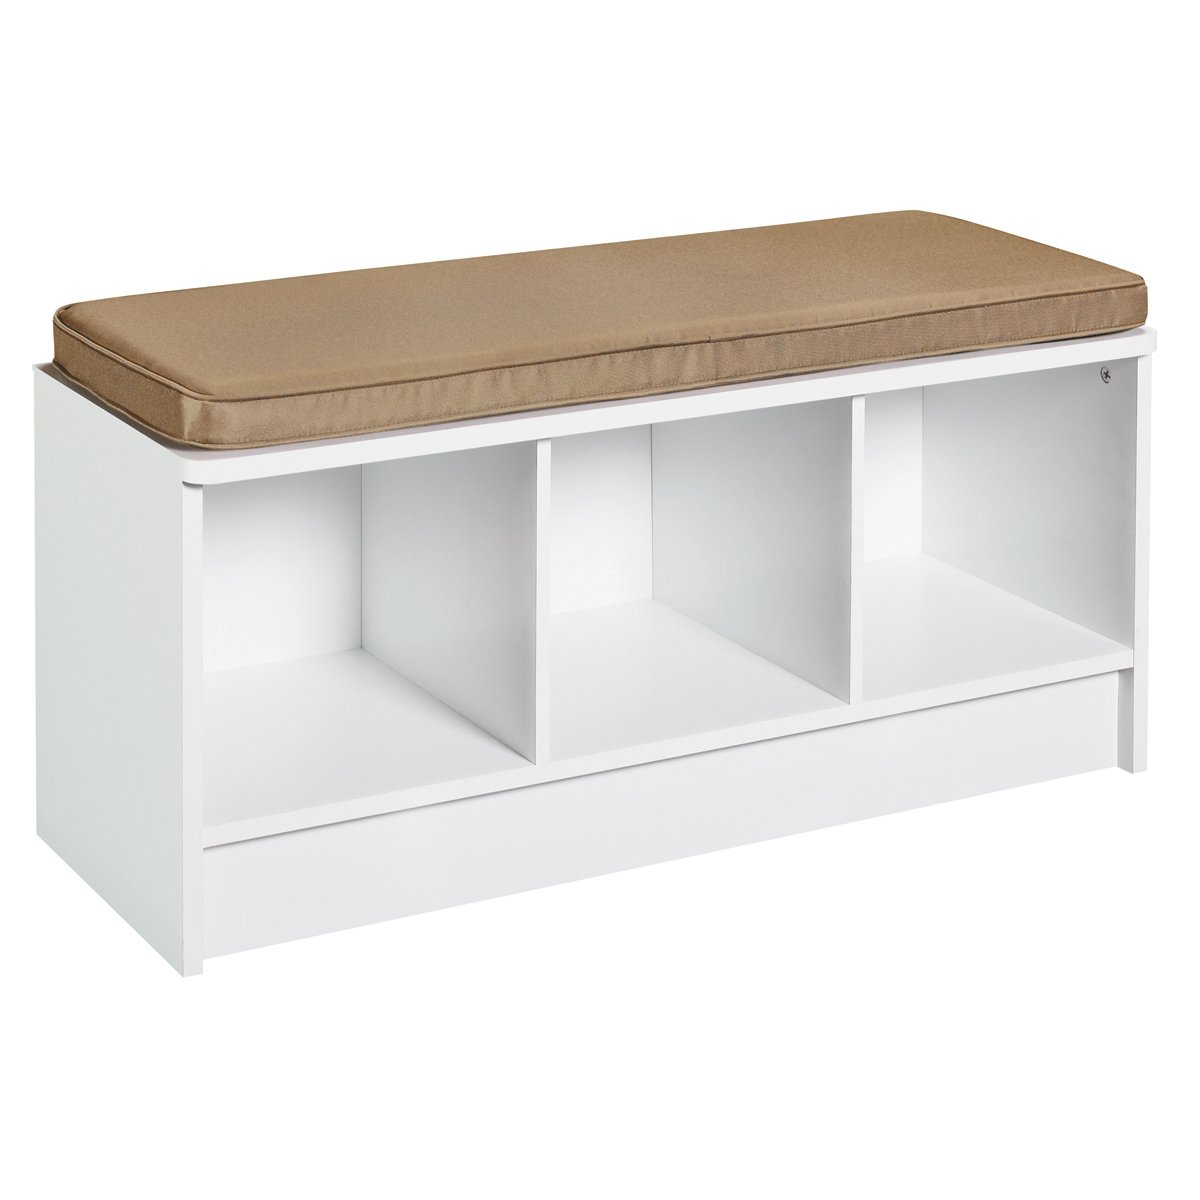 Entryway 3 Cube Storage Bench White Organization Furniture Hallway Window Seat Ebay